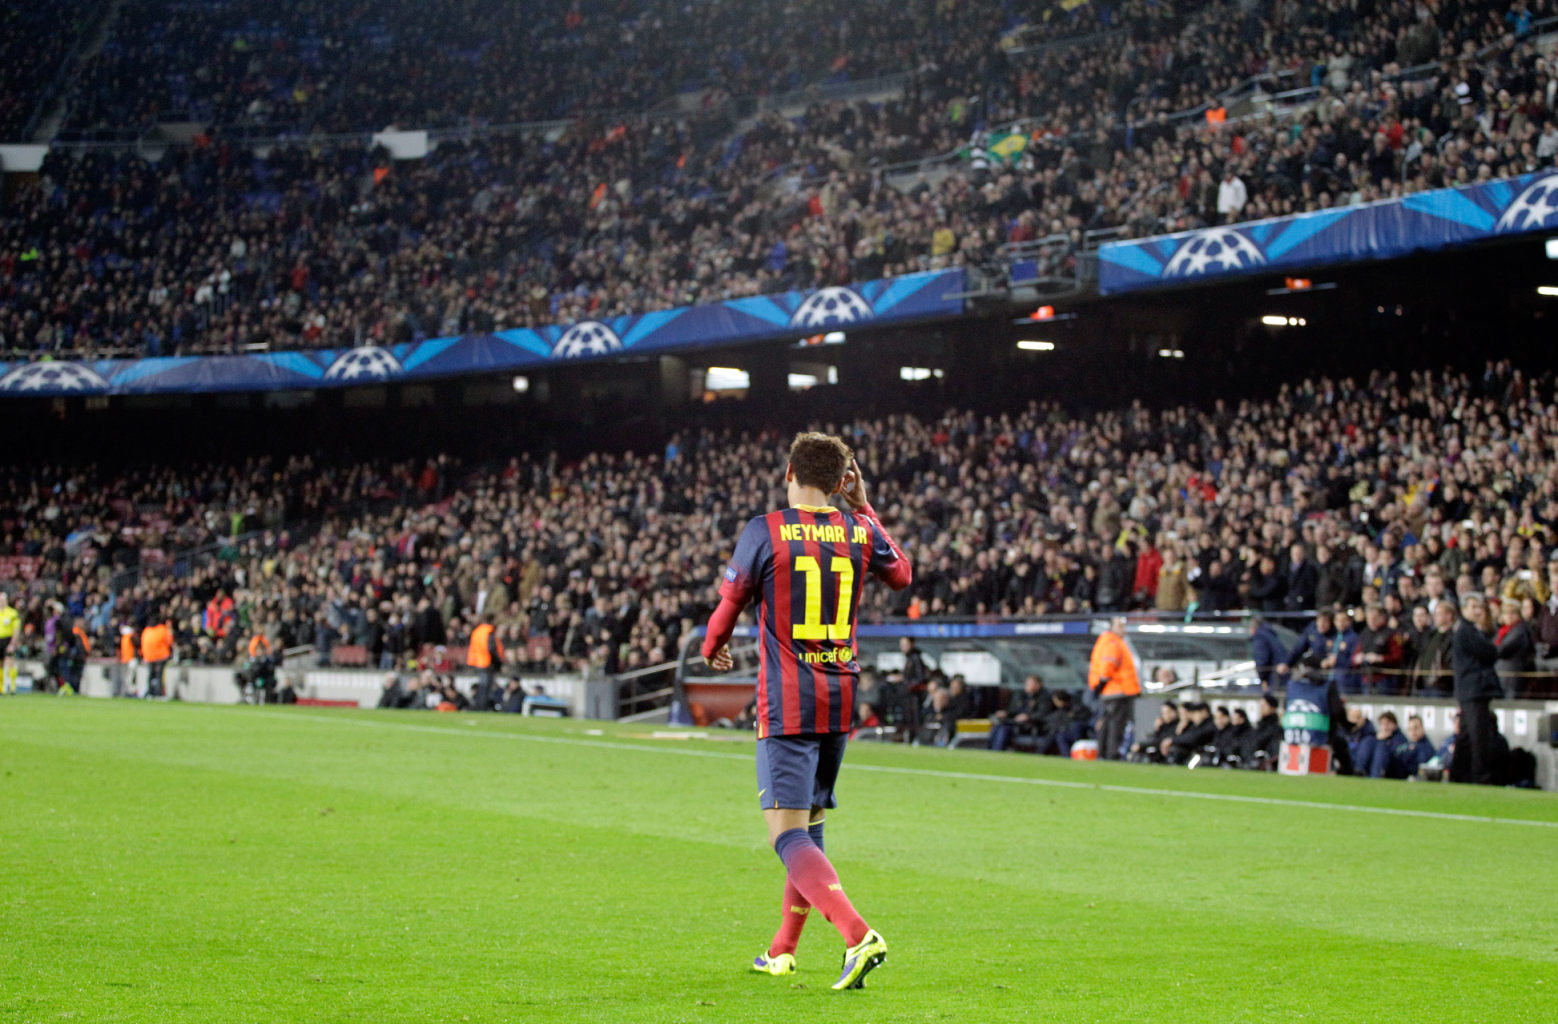 Neymar becoming the new Barcelona idol